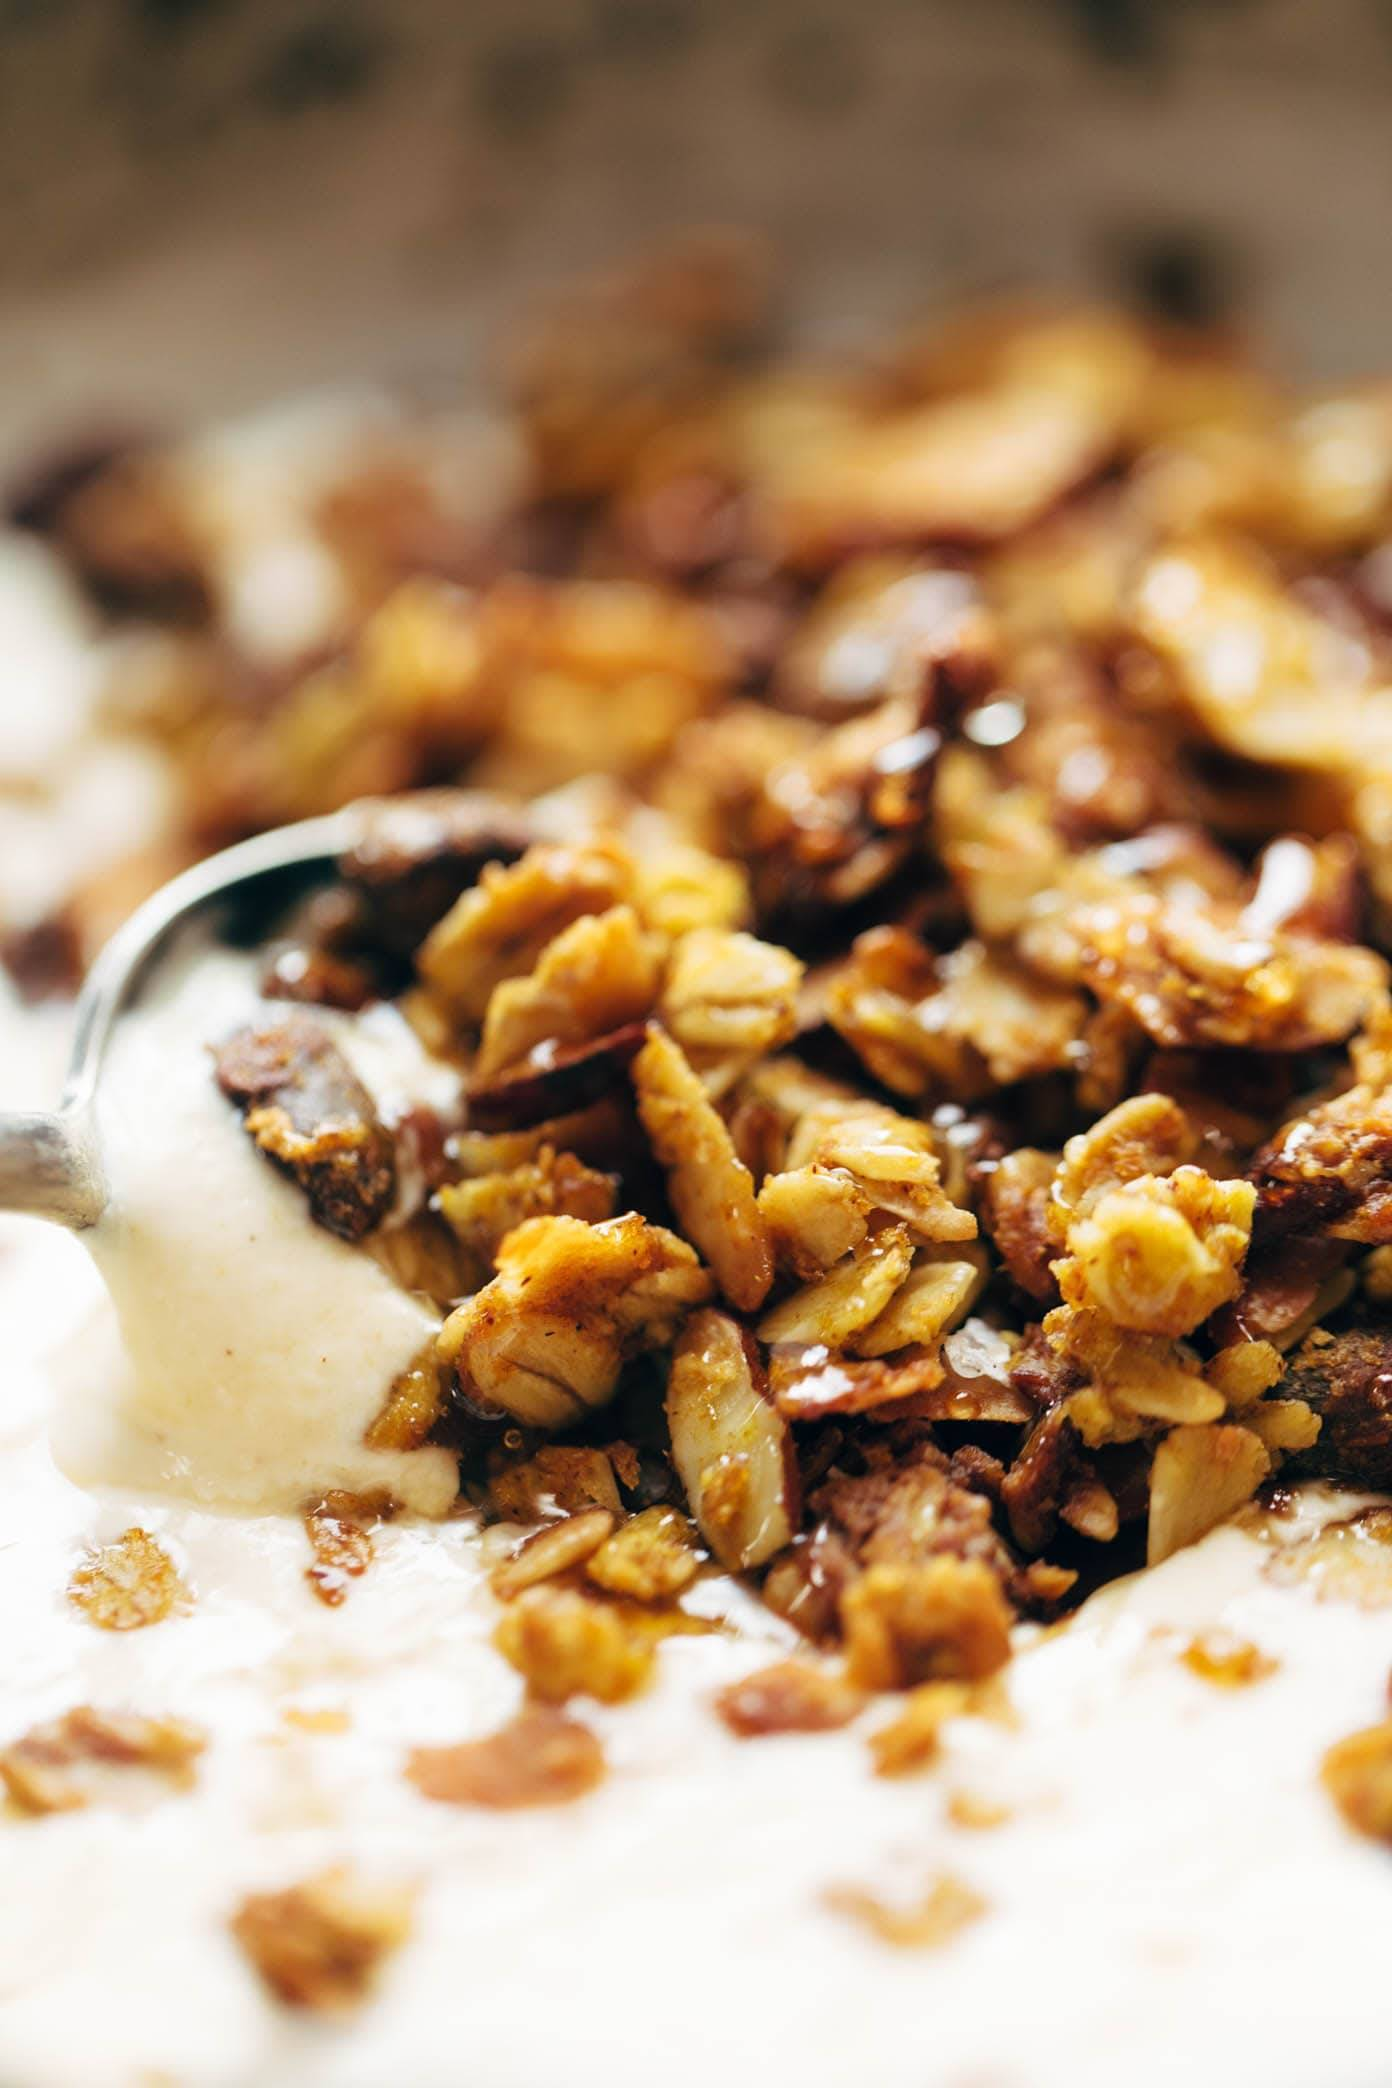 A close up photo of a spoon scooping pumpkin granola and yogurt.